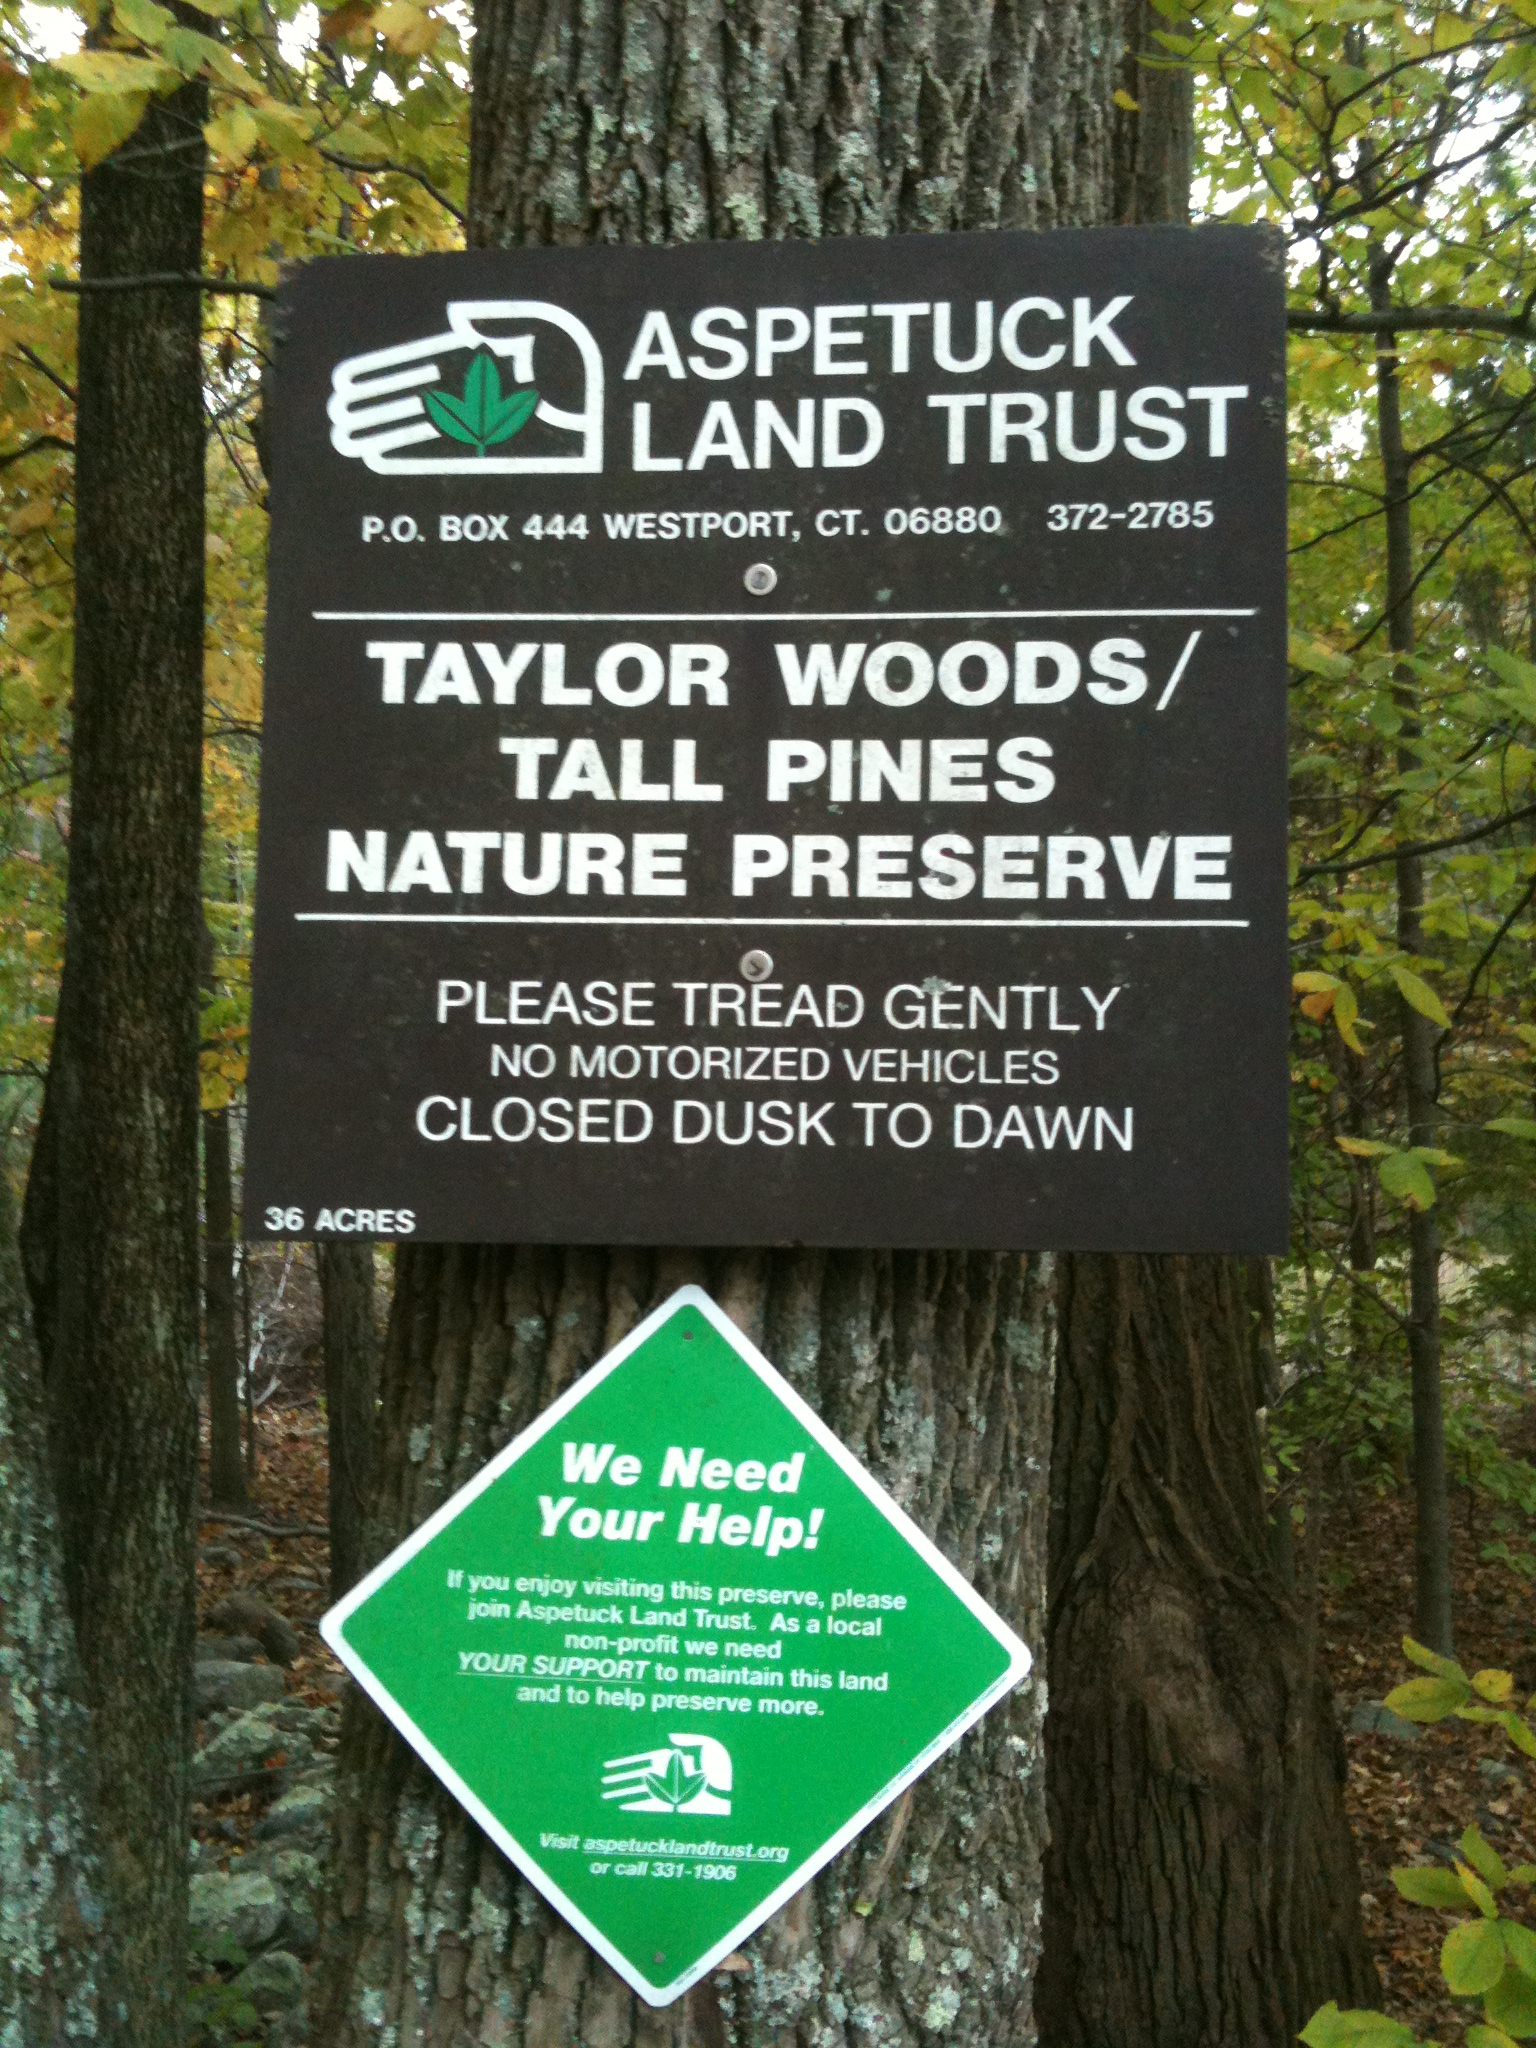 Weston Taylor Woods Tall Pines 2.jpg